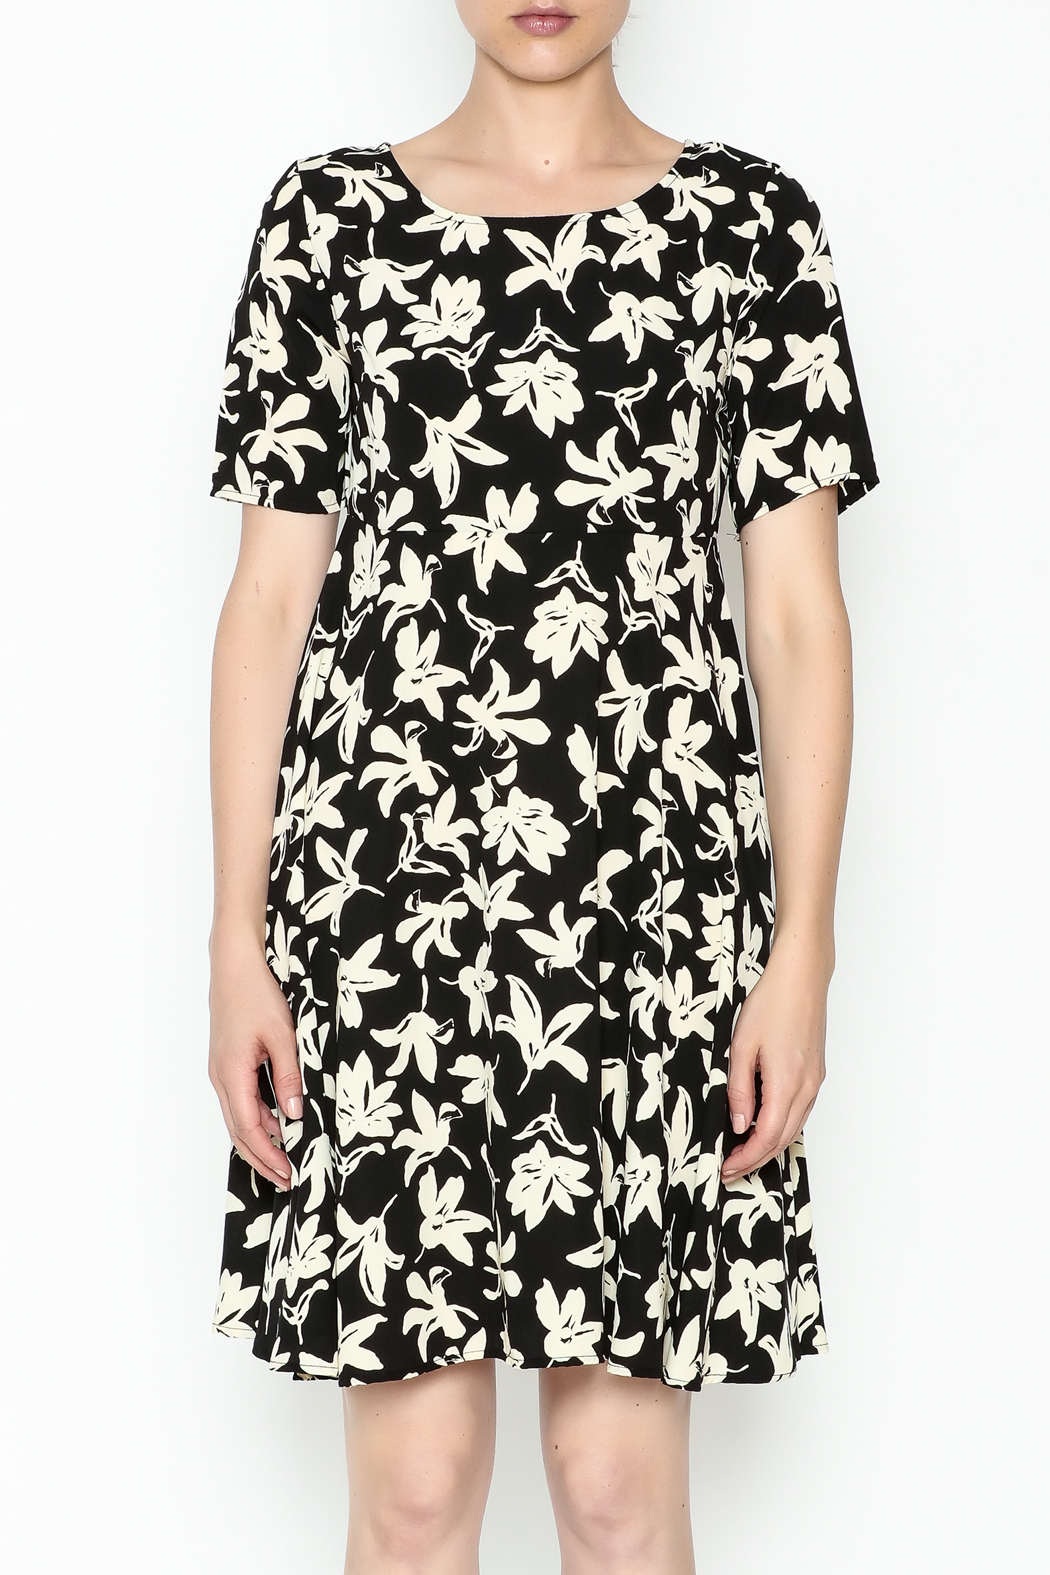 Everly Terri Floral Shift Dress - Front Full Image